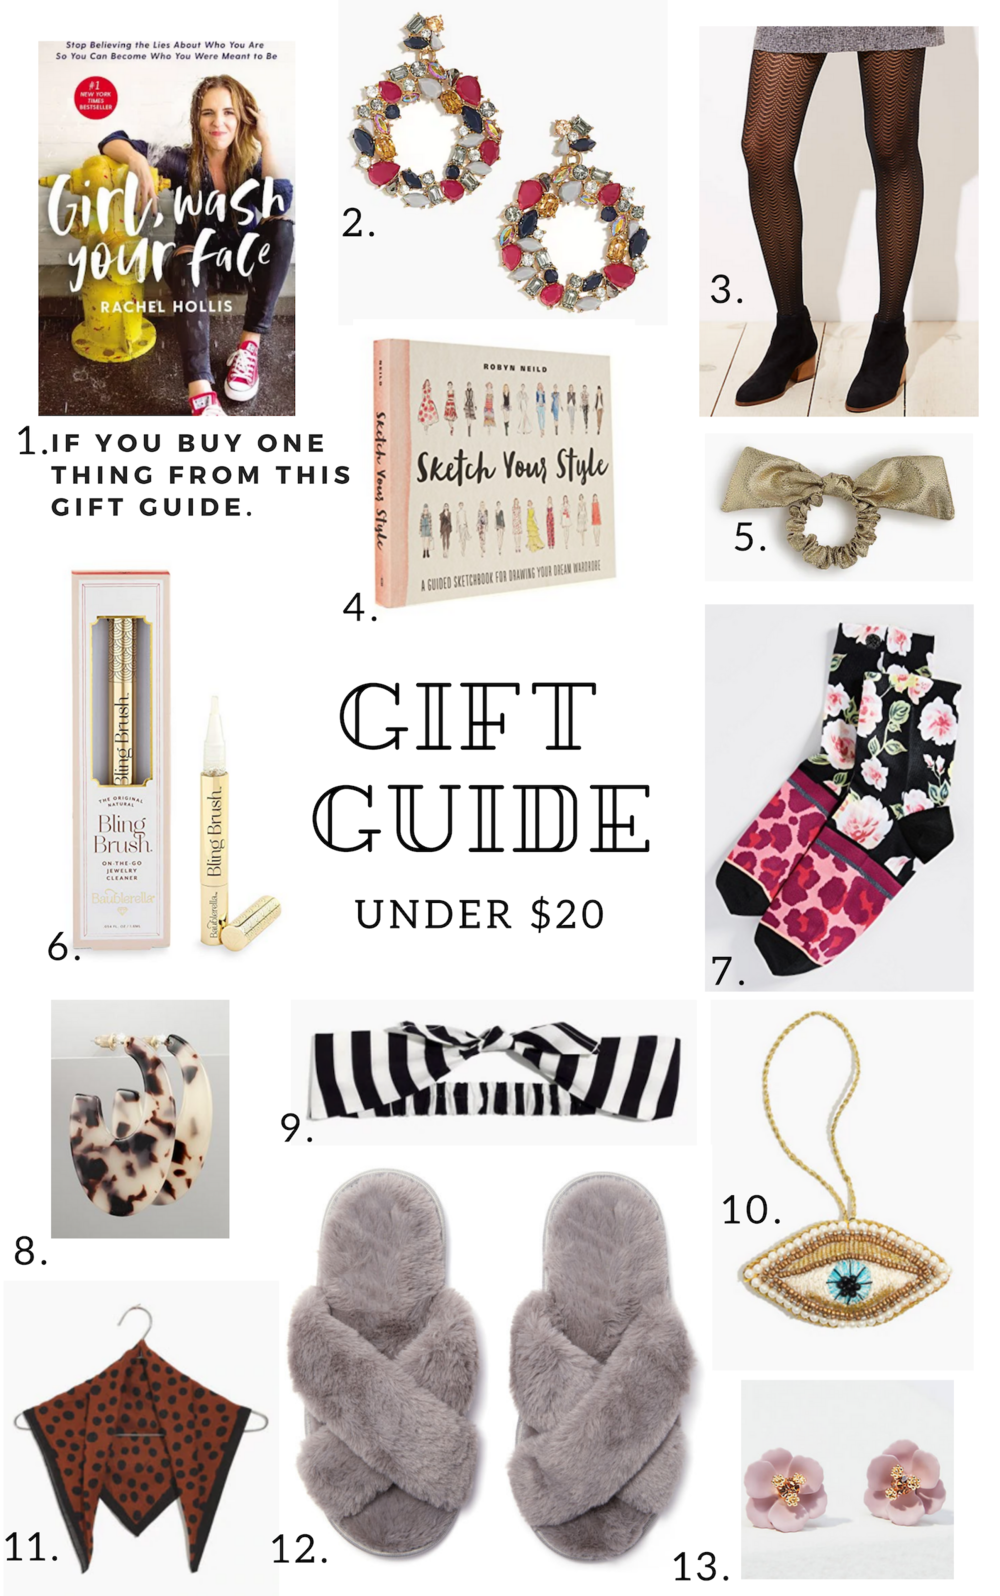 Gift Guide of gifts under $20